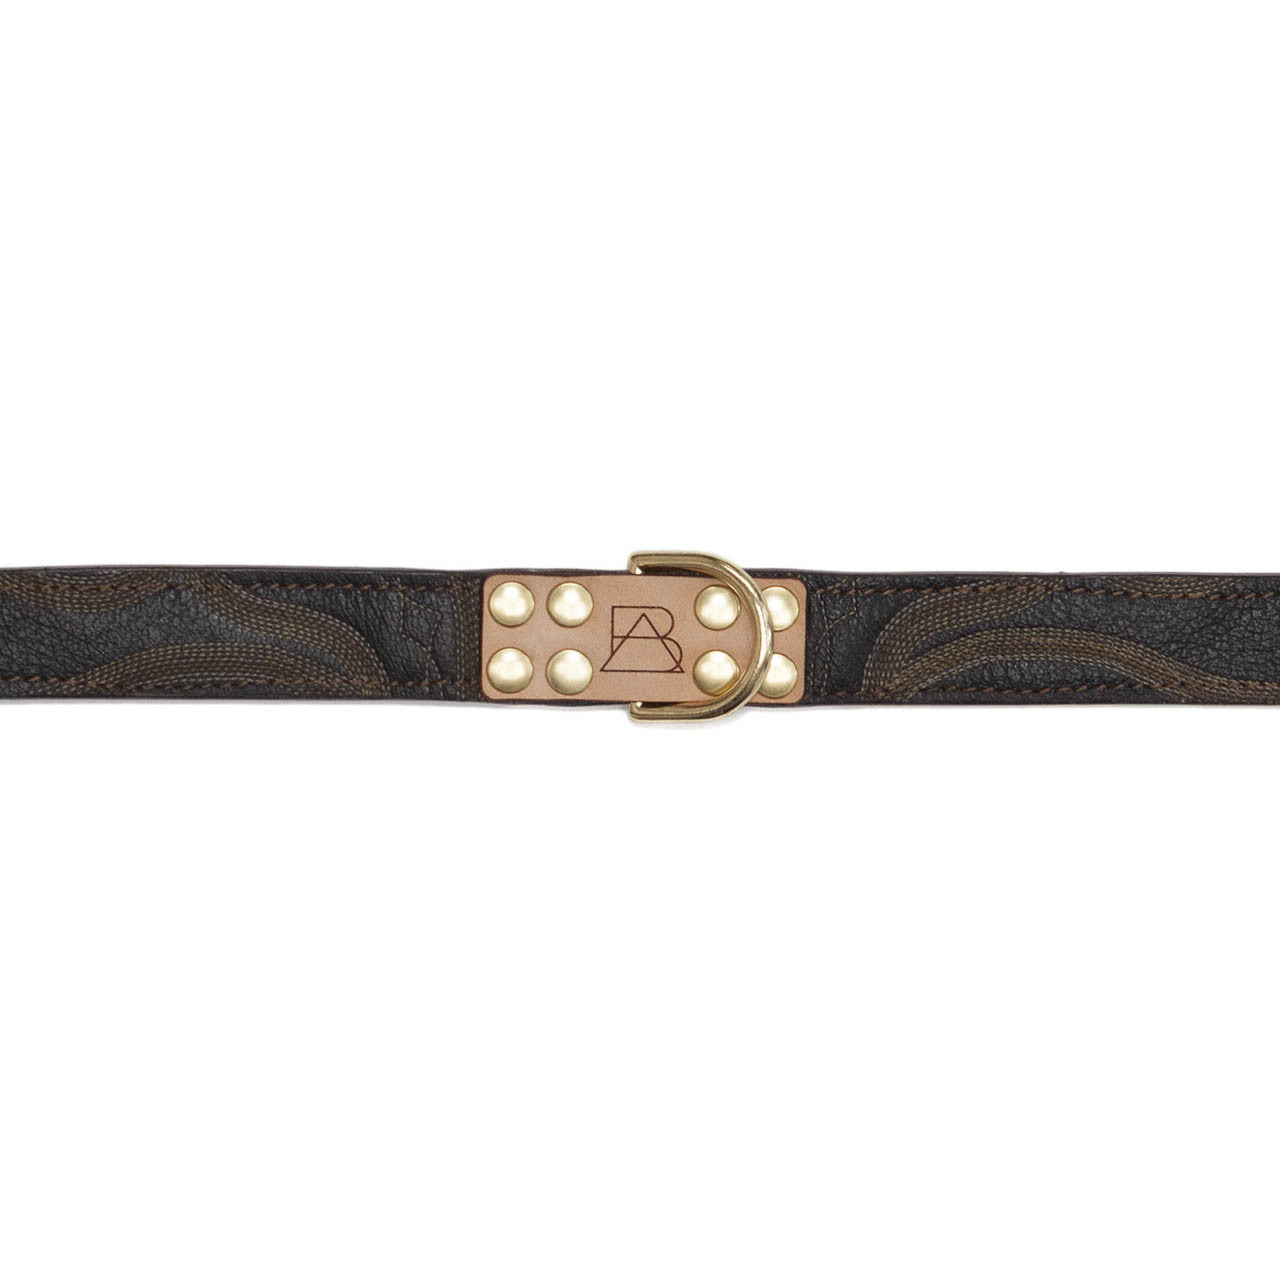 Mahogany Brown Dog Collar with Black Leather + Tan/Light Brown Stitching (tag)